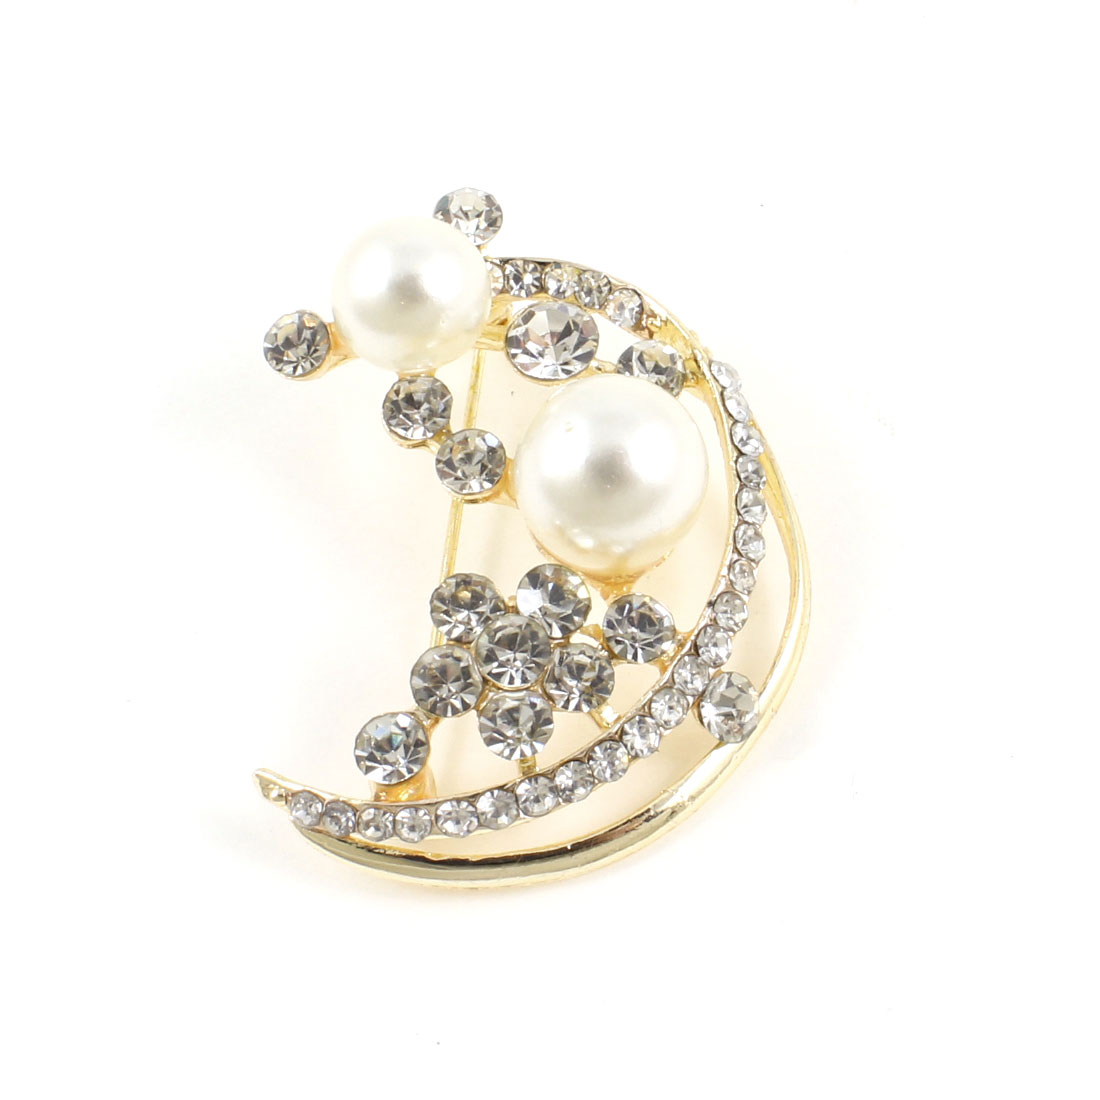 Rhinestone Accent Imitation Pearl Inlaid Moon Shape Pin Brooch for Ladies